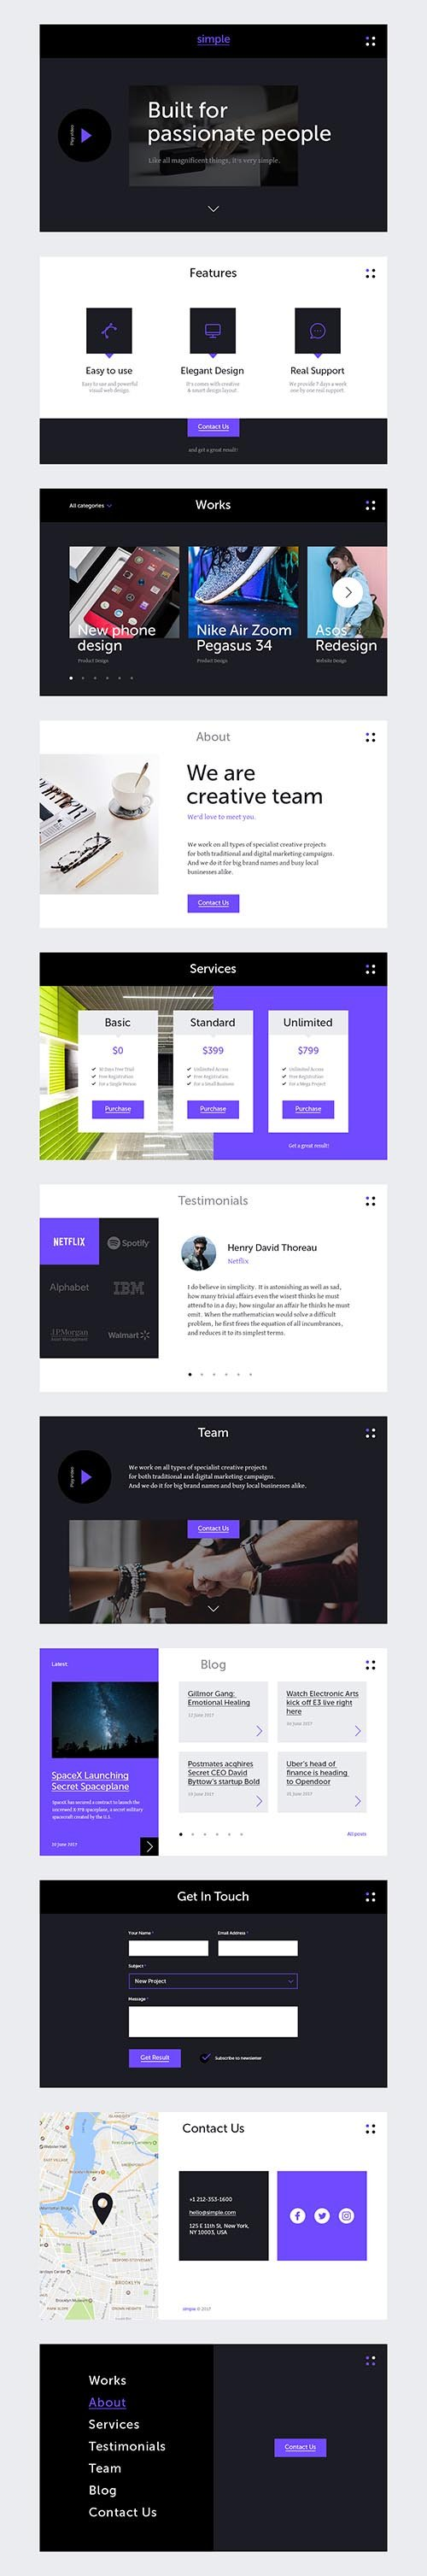 PSD Simple UI Kit